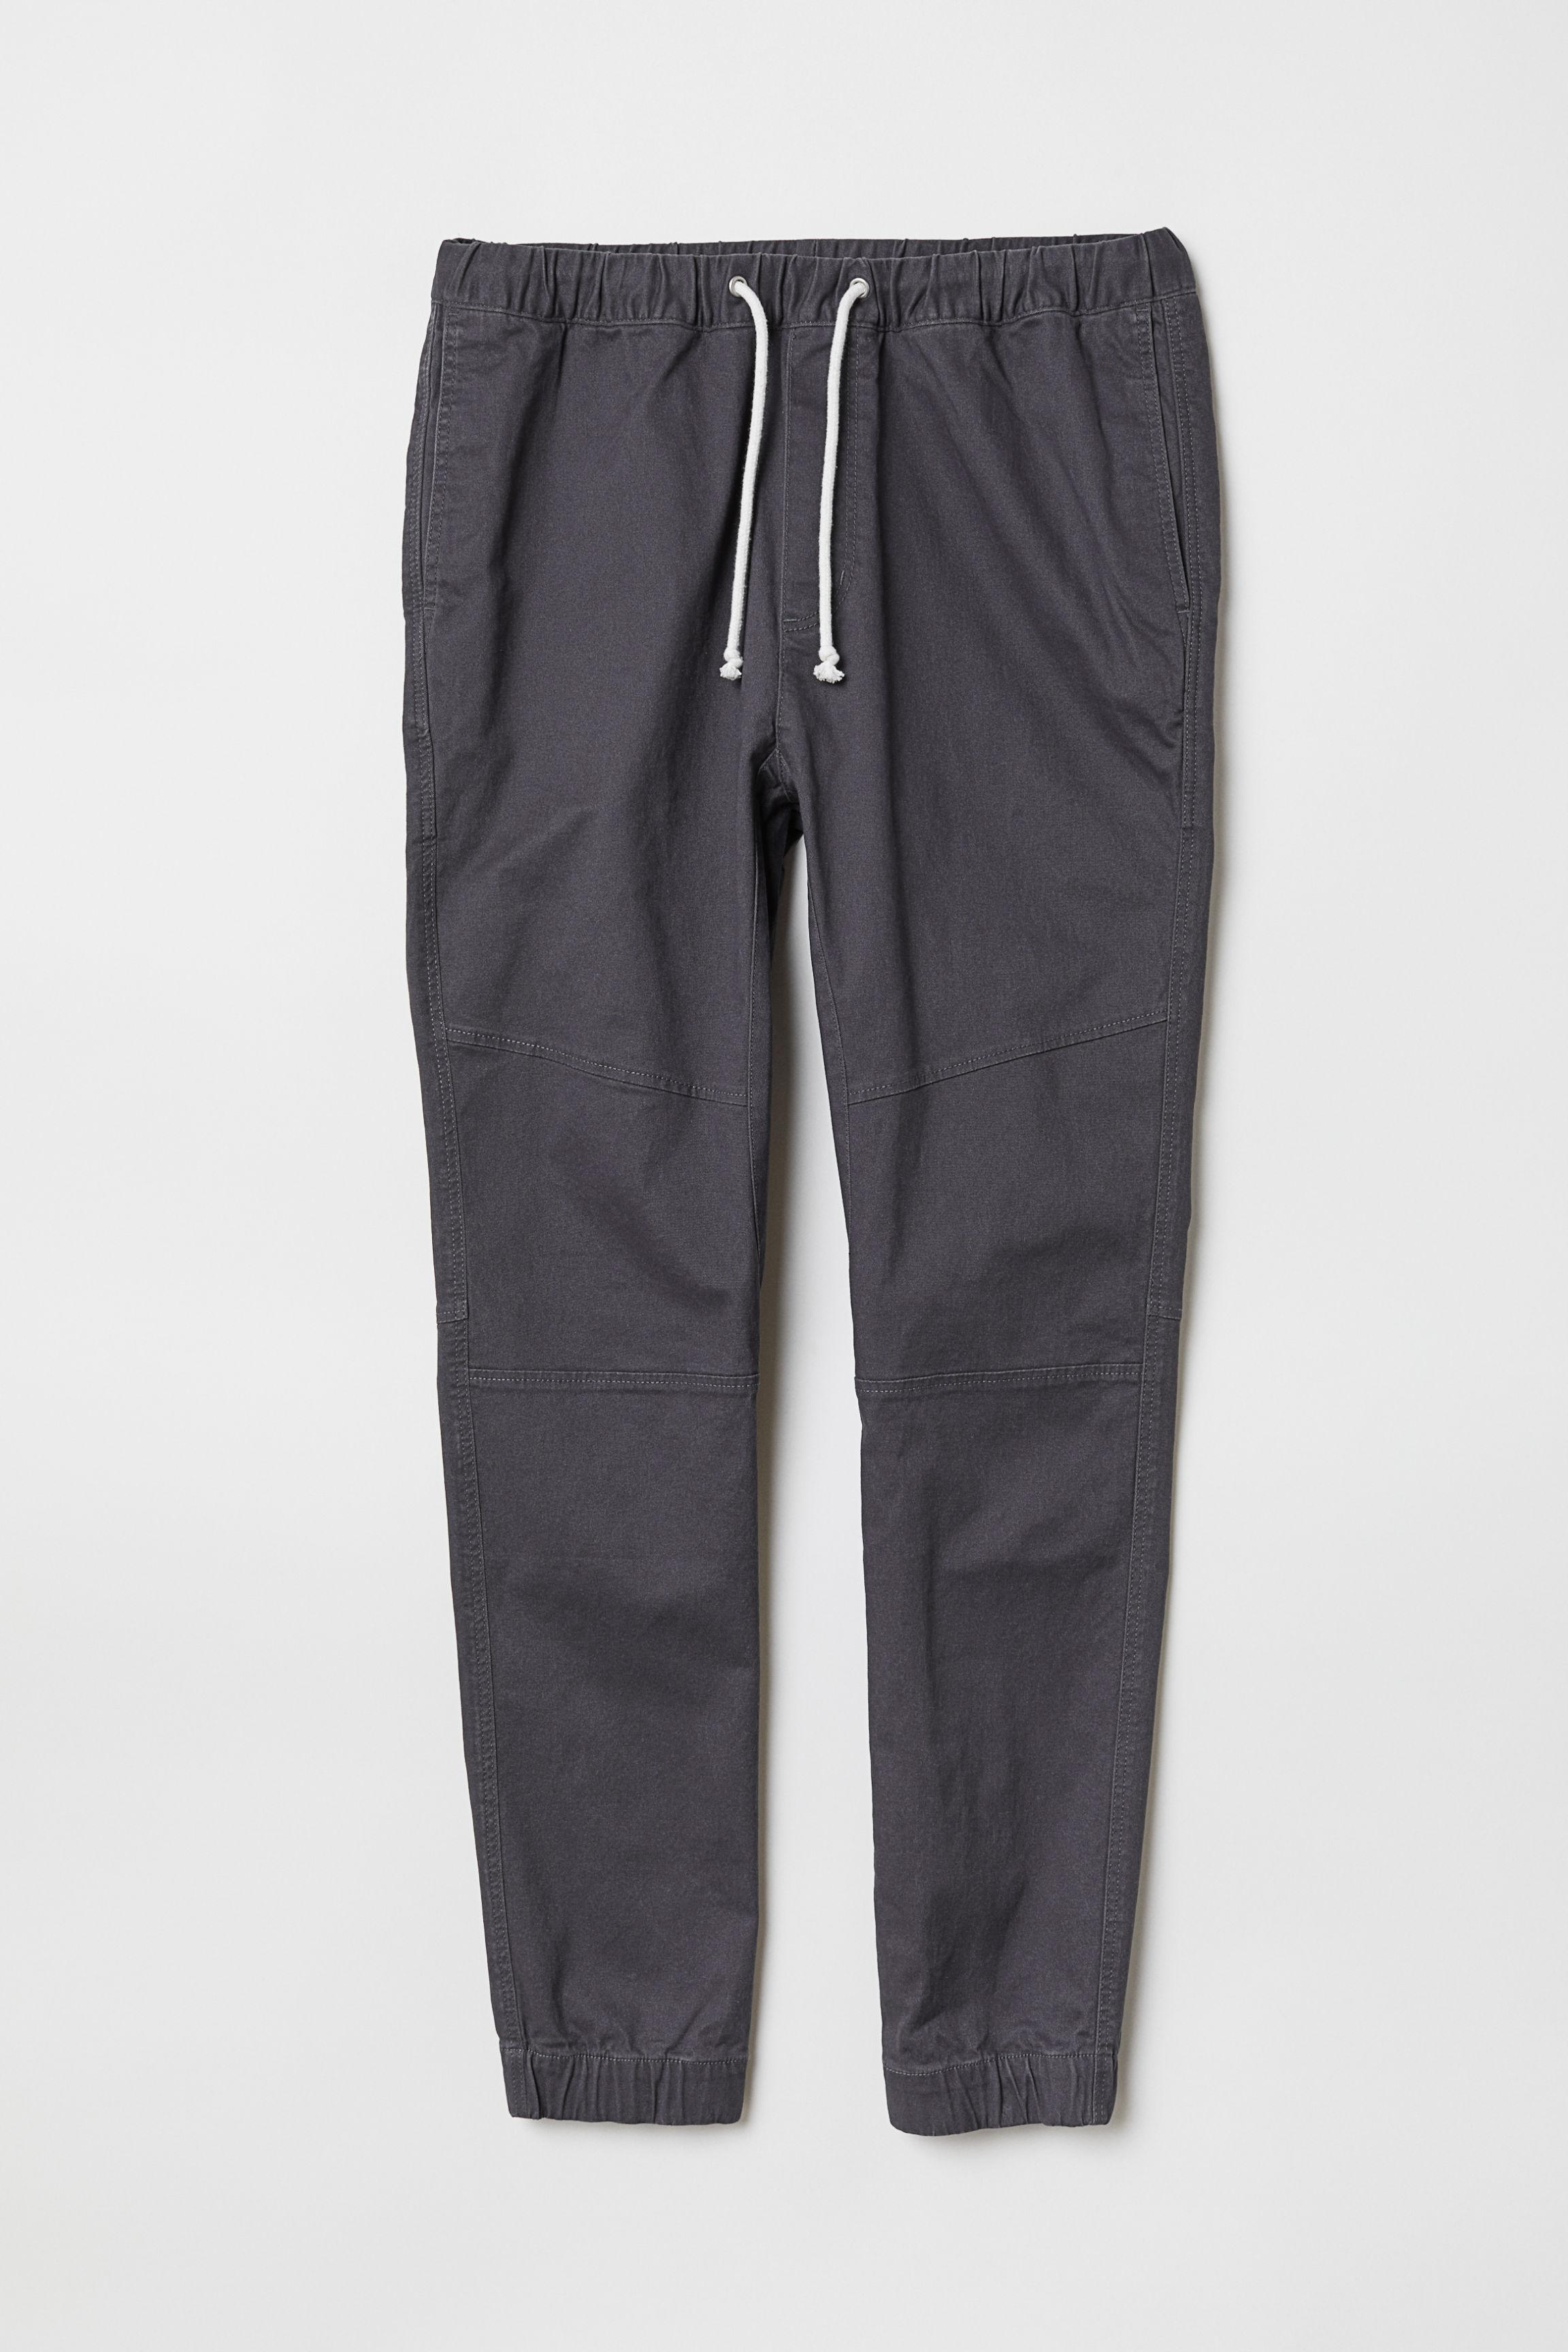 H&M Cotton Twill joggers in Dark Grey (Grey) for Men